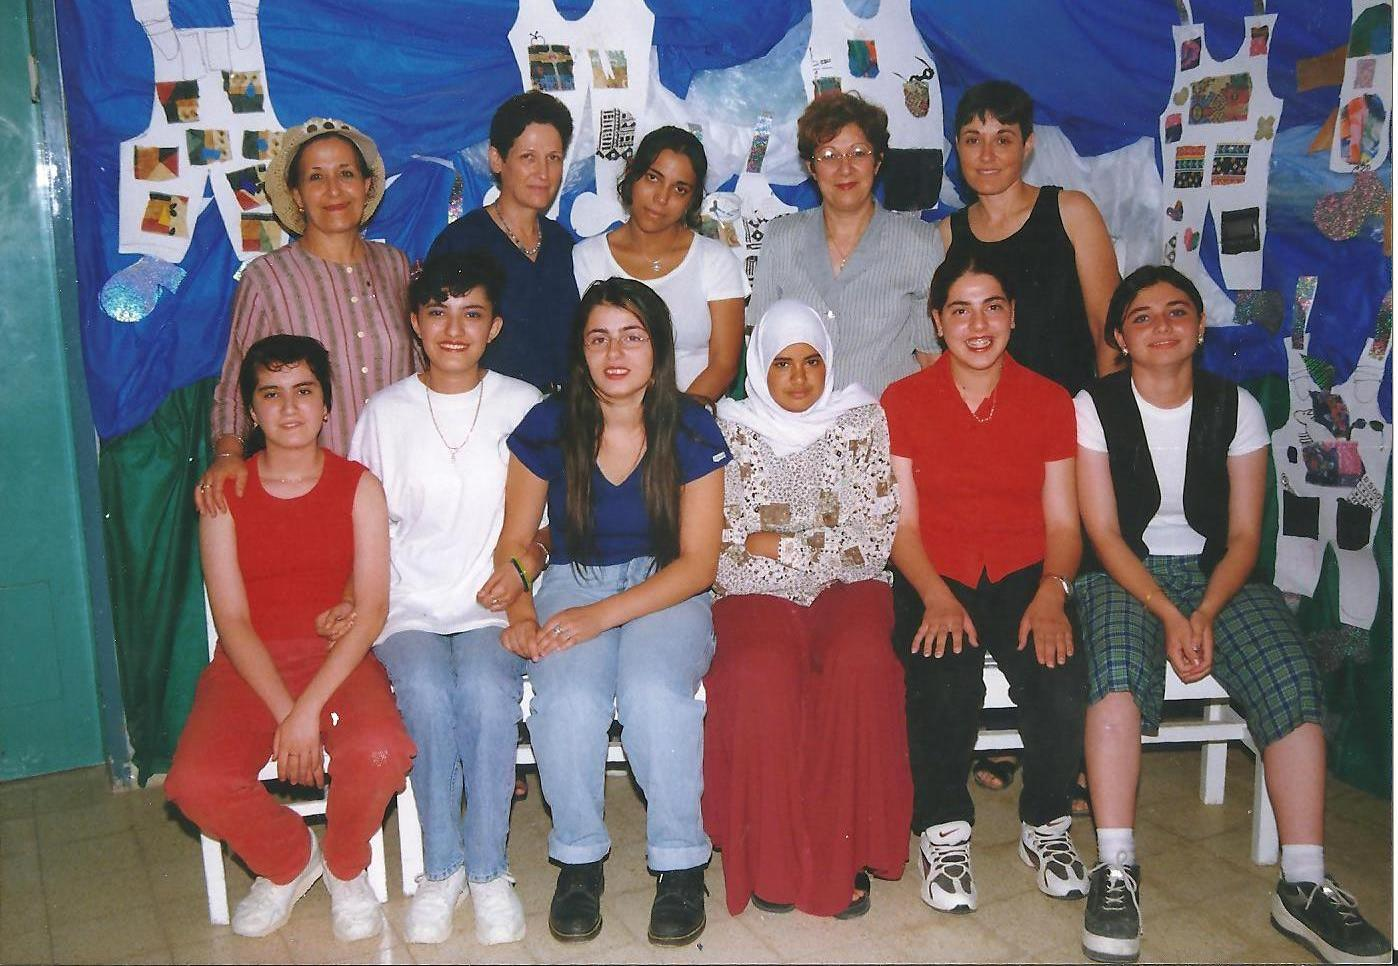 Zvia Mordechai, standing, left, and Marlene Alvez, standing, center, with fellow teachers and students in the 1990s at Beersheba's Niv School for the Deaf. (Courtesy of Zvia Mordechai)